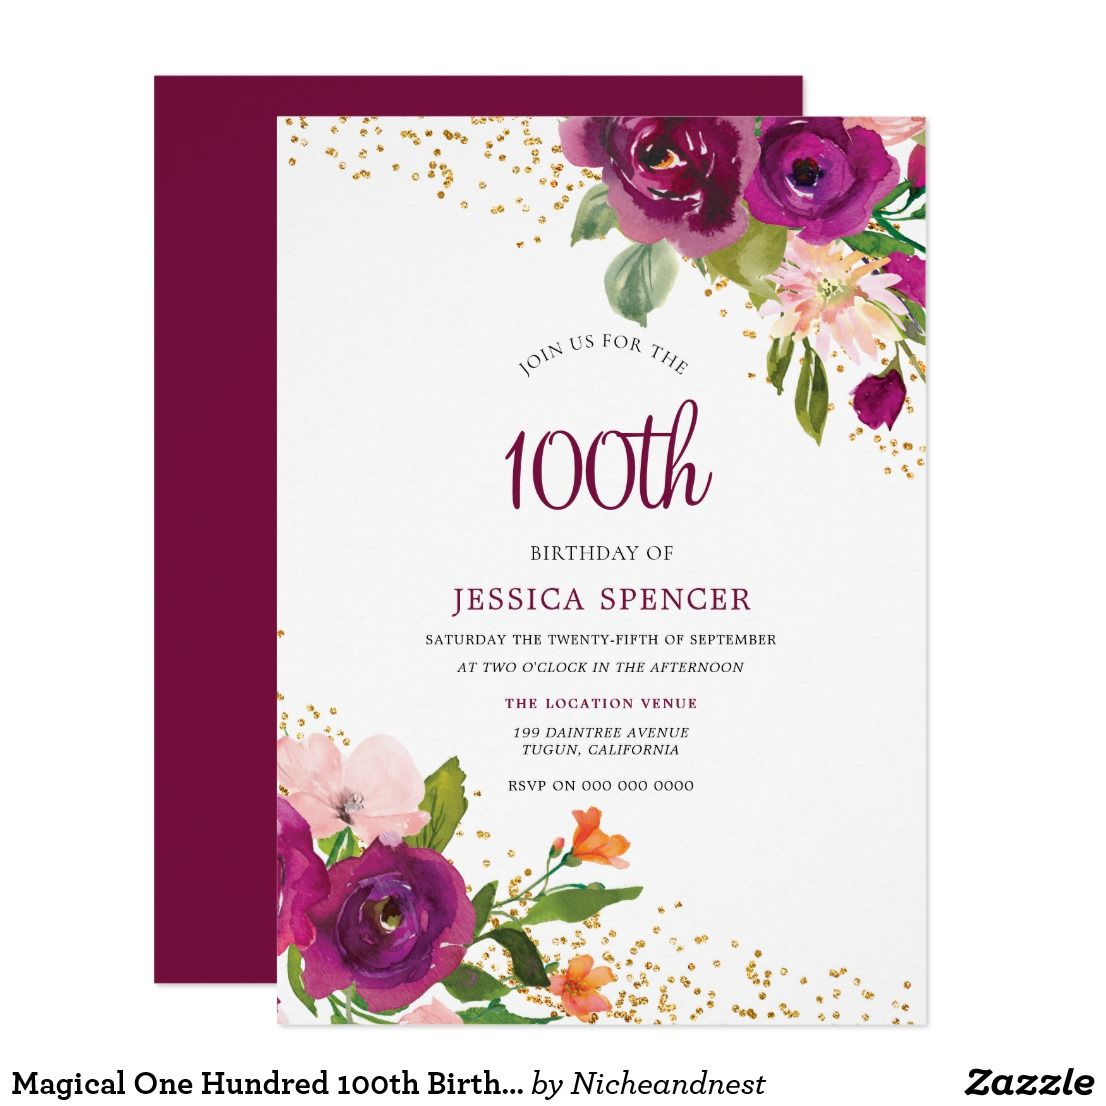 Magical One Hundred 100th Birthday Invite Affiliate Ad Link Custom Party Invitations Invites Birthdayparty